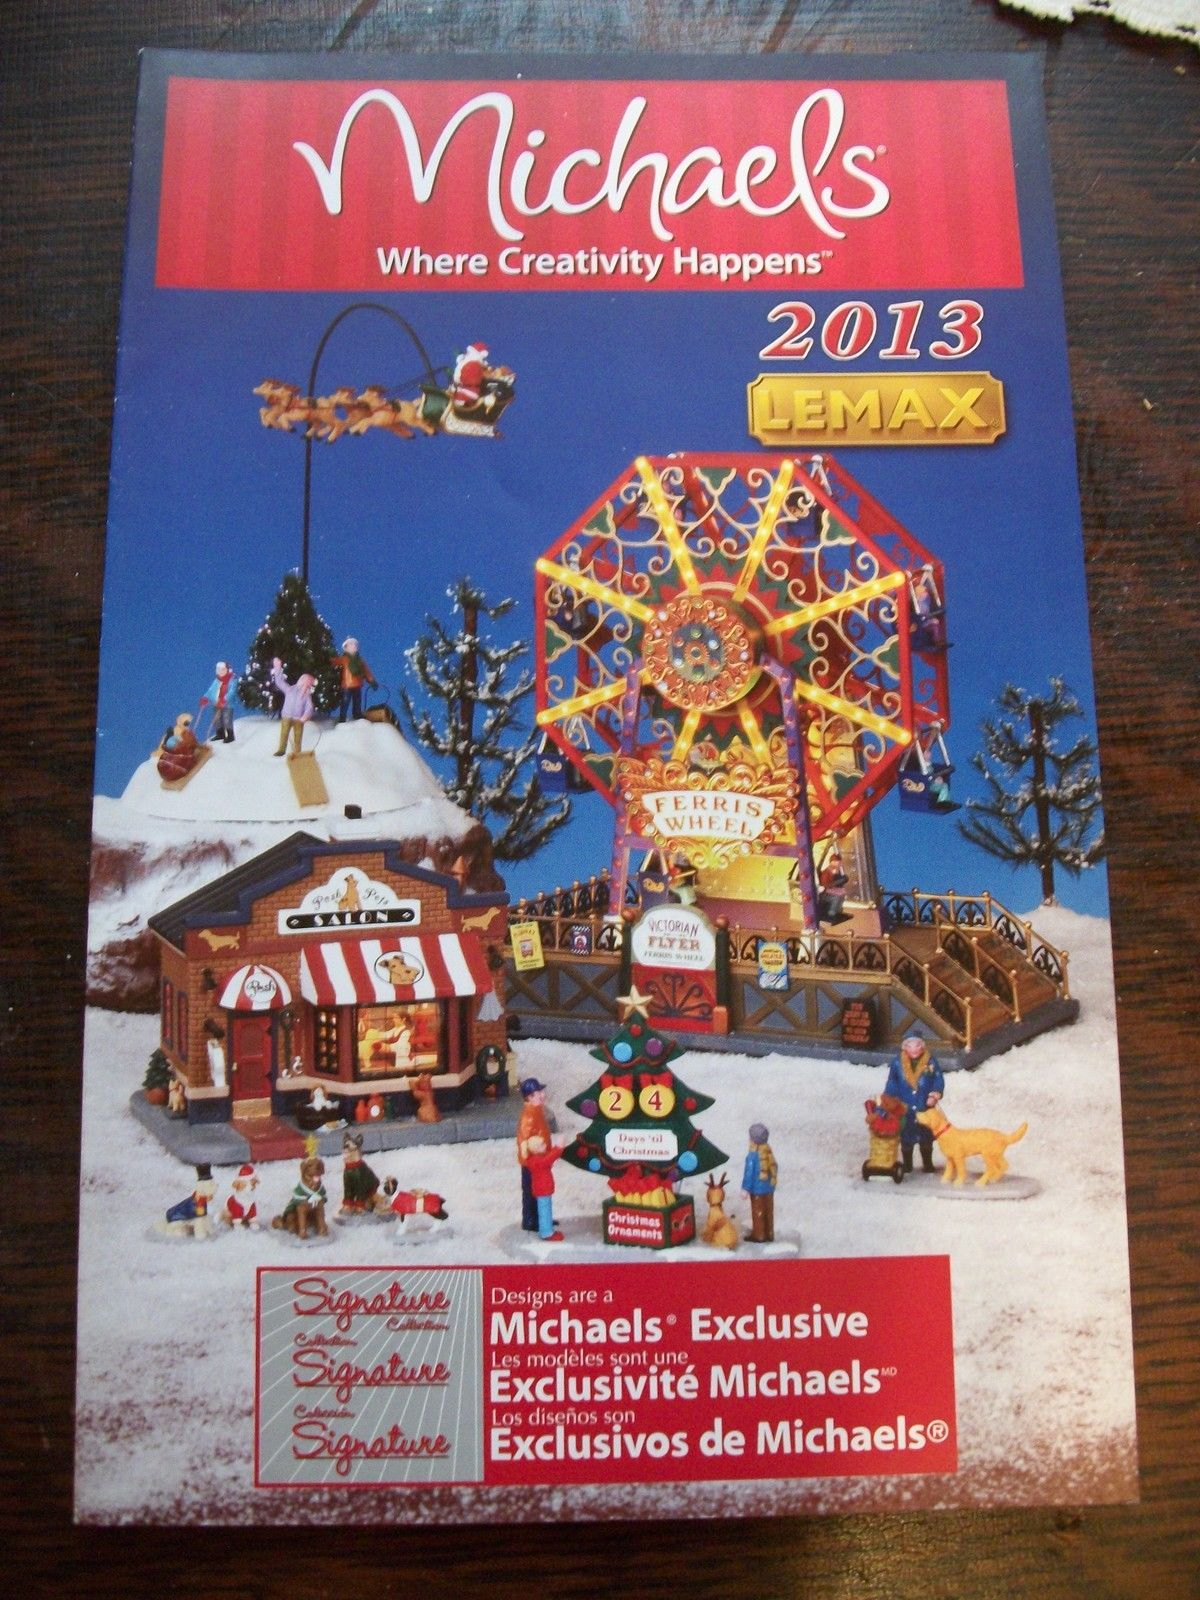 lemax michaels christmas village 2013 product brochure catalog ebay michael christmas product brochure